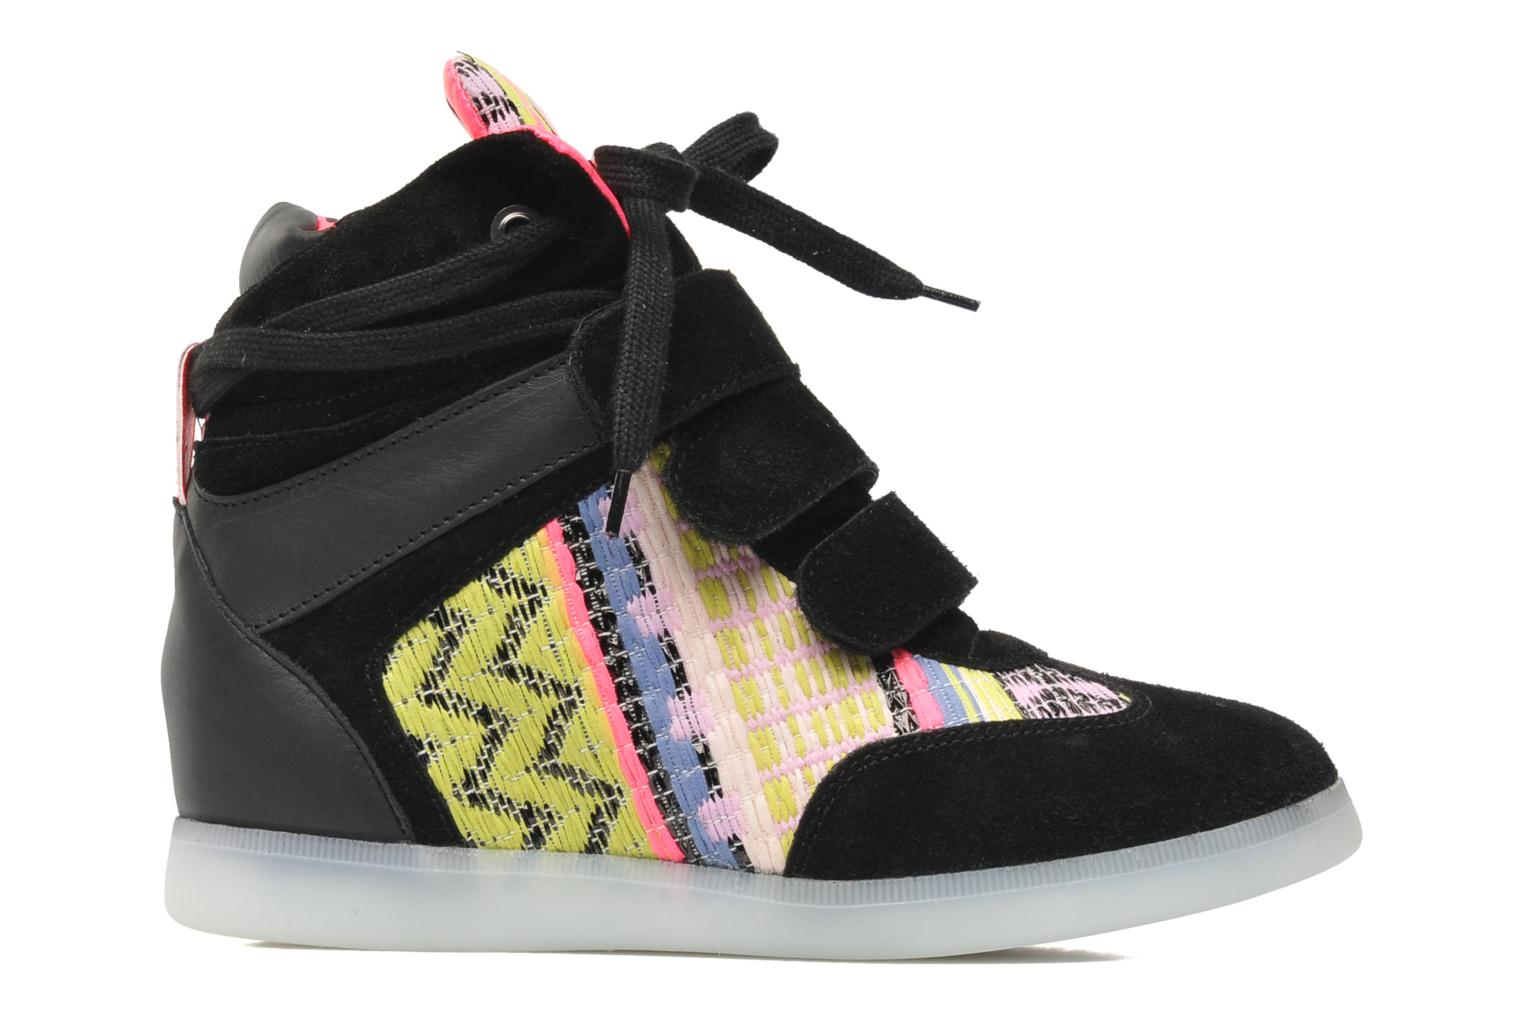 Manhattan Chic Sneaks Fabric